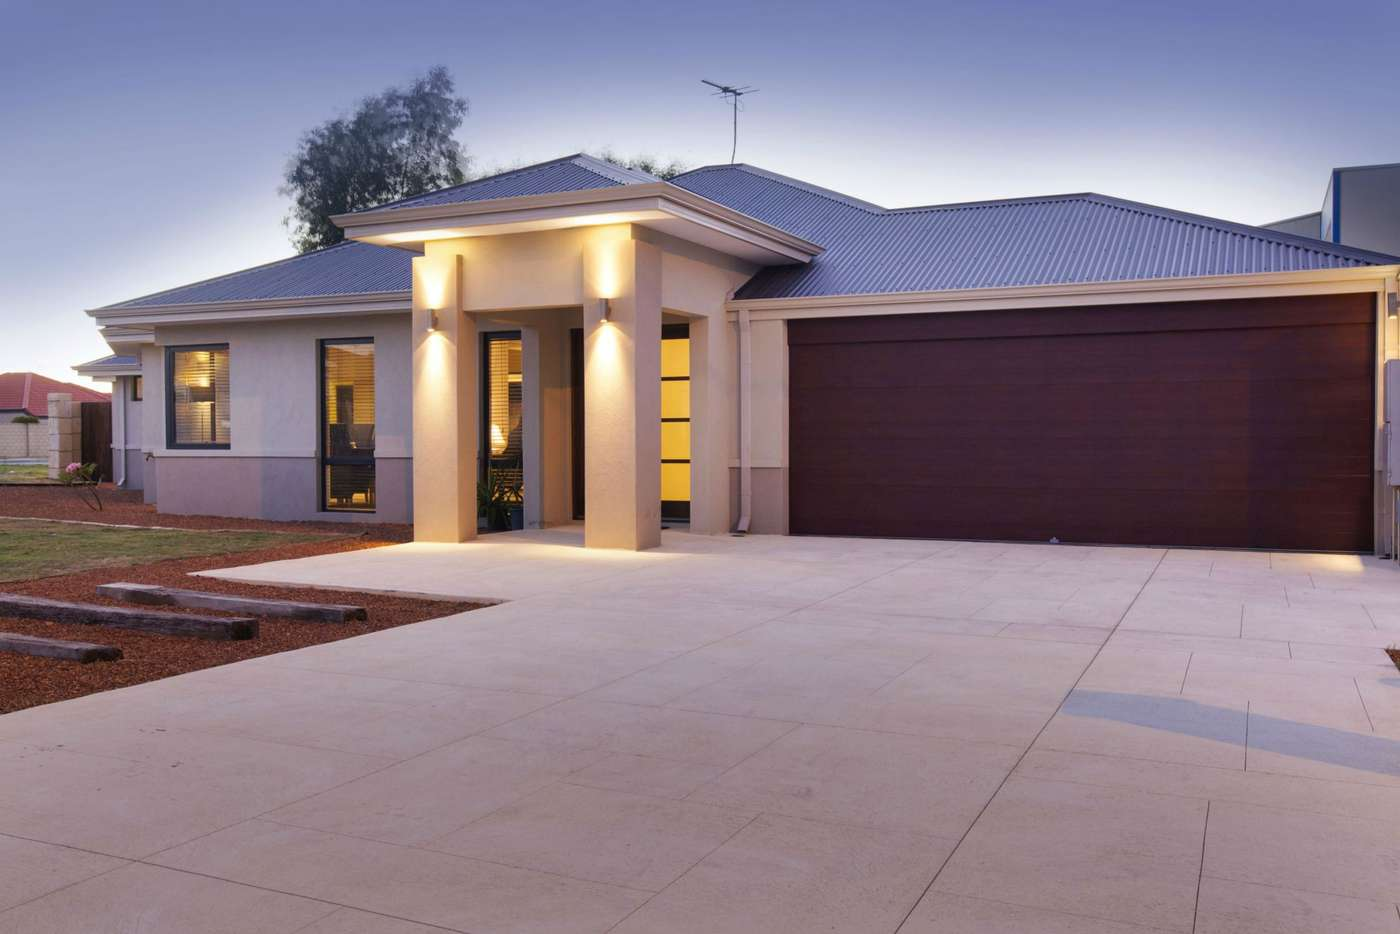 Main view of Homely house listing, 370 Odin Drive, Stirling WA 6021